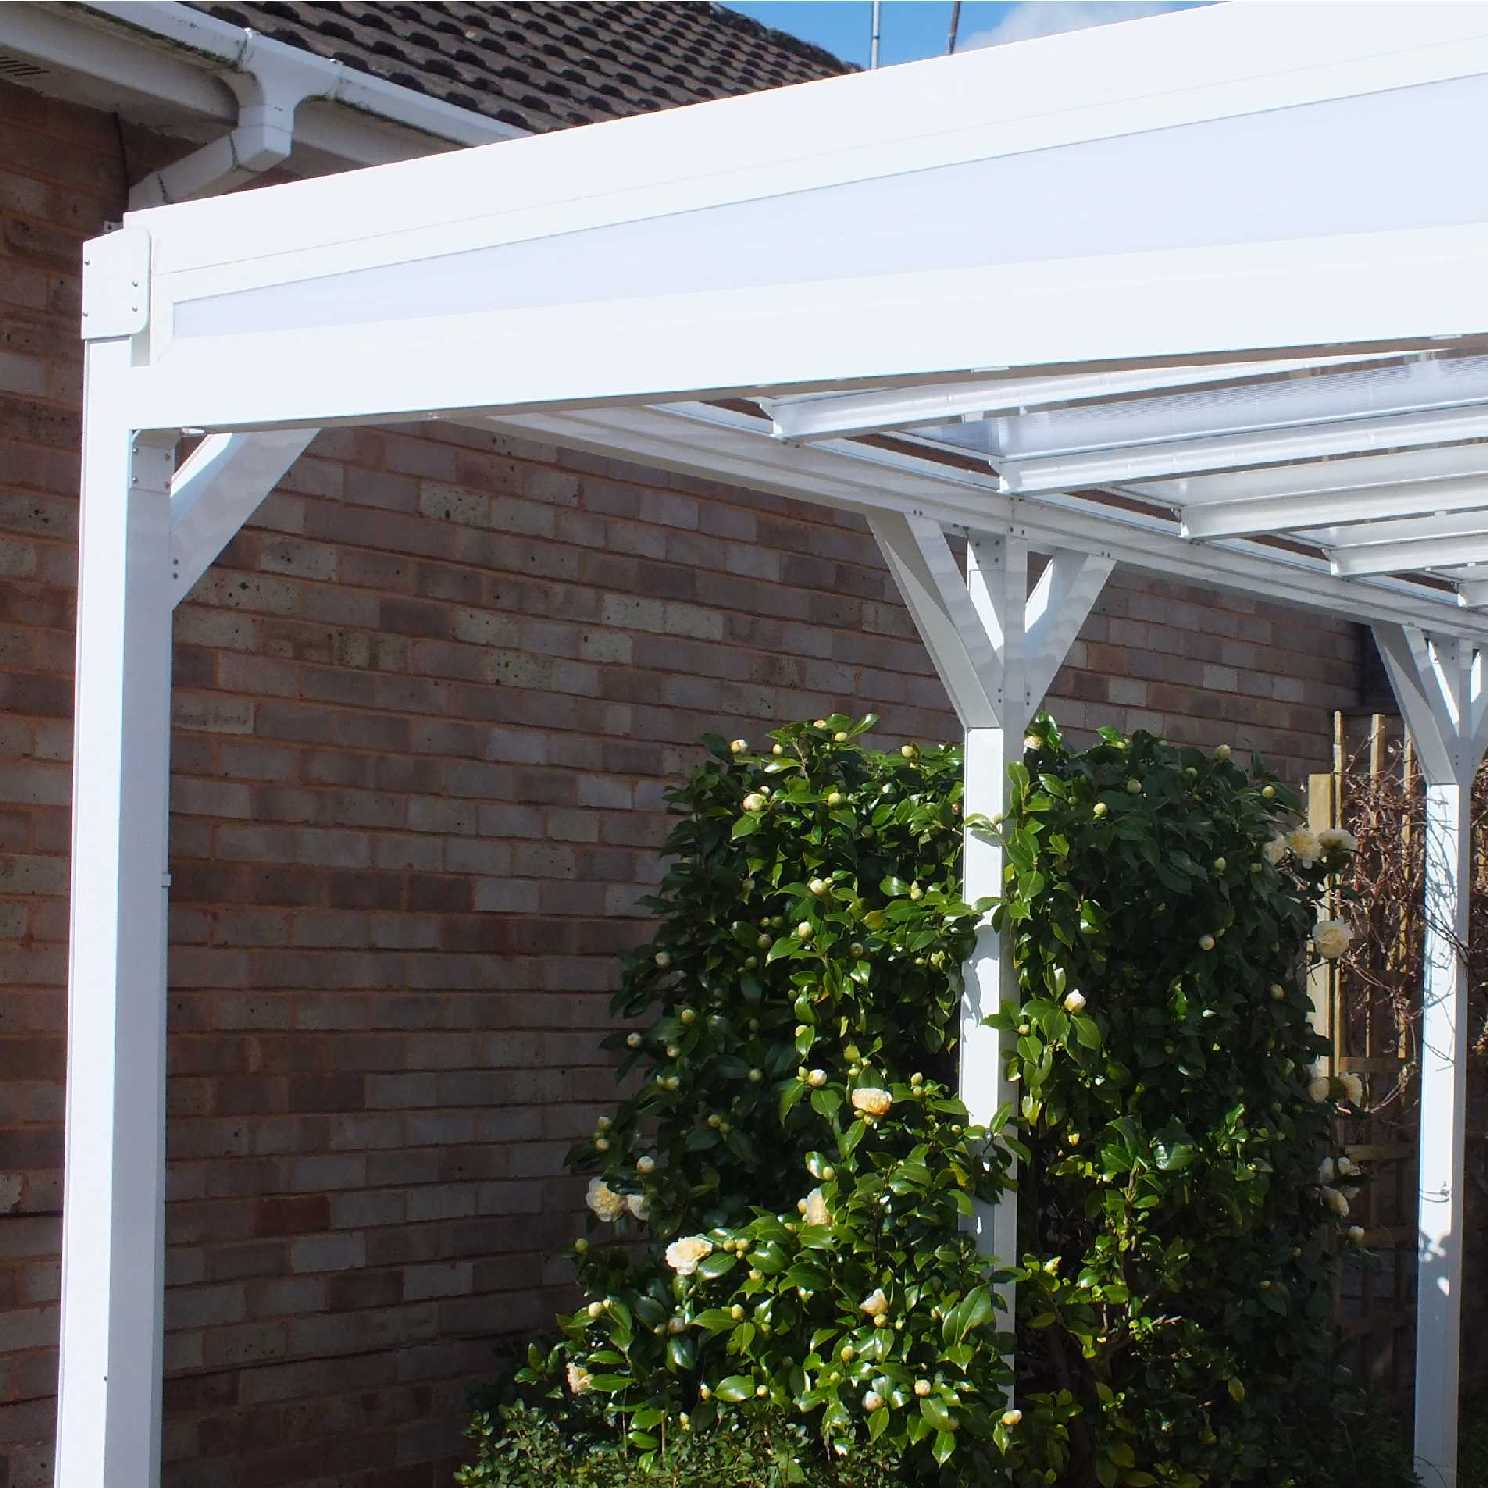 Omega Smart White Lean-To Canopy with 16mm Polycarbonate Glazing - 11.4m (W) x 3.5m (P), (5) Supporting Posts from Omega Build